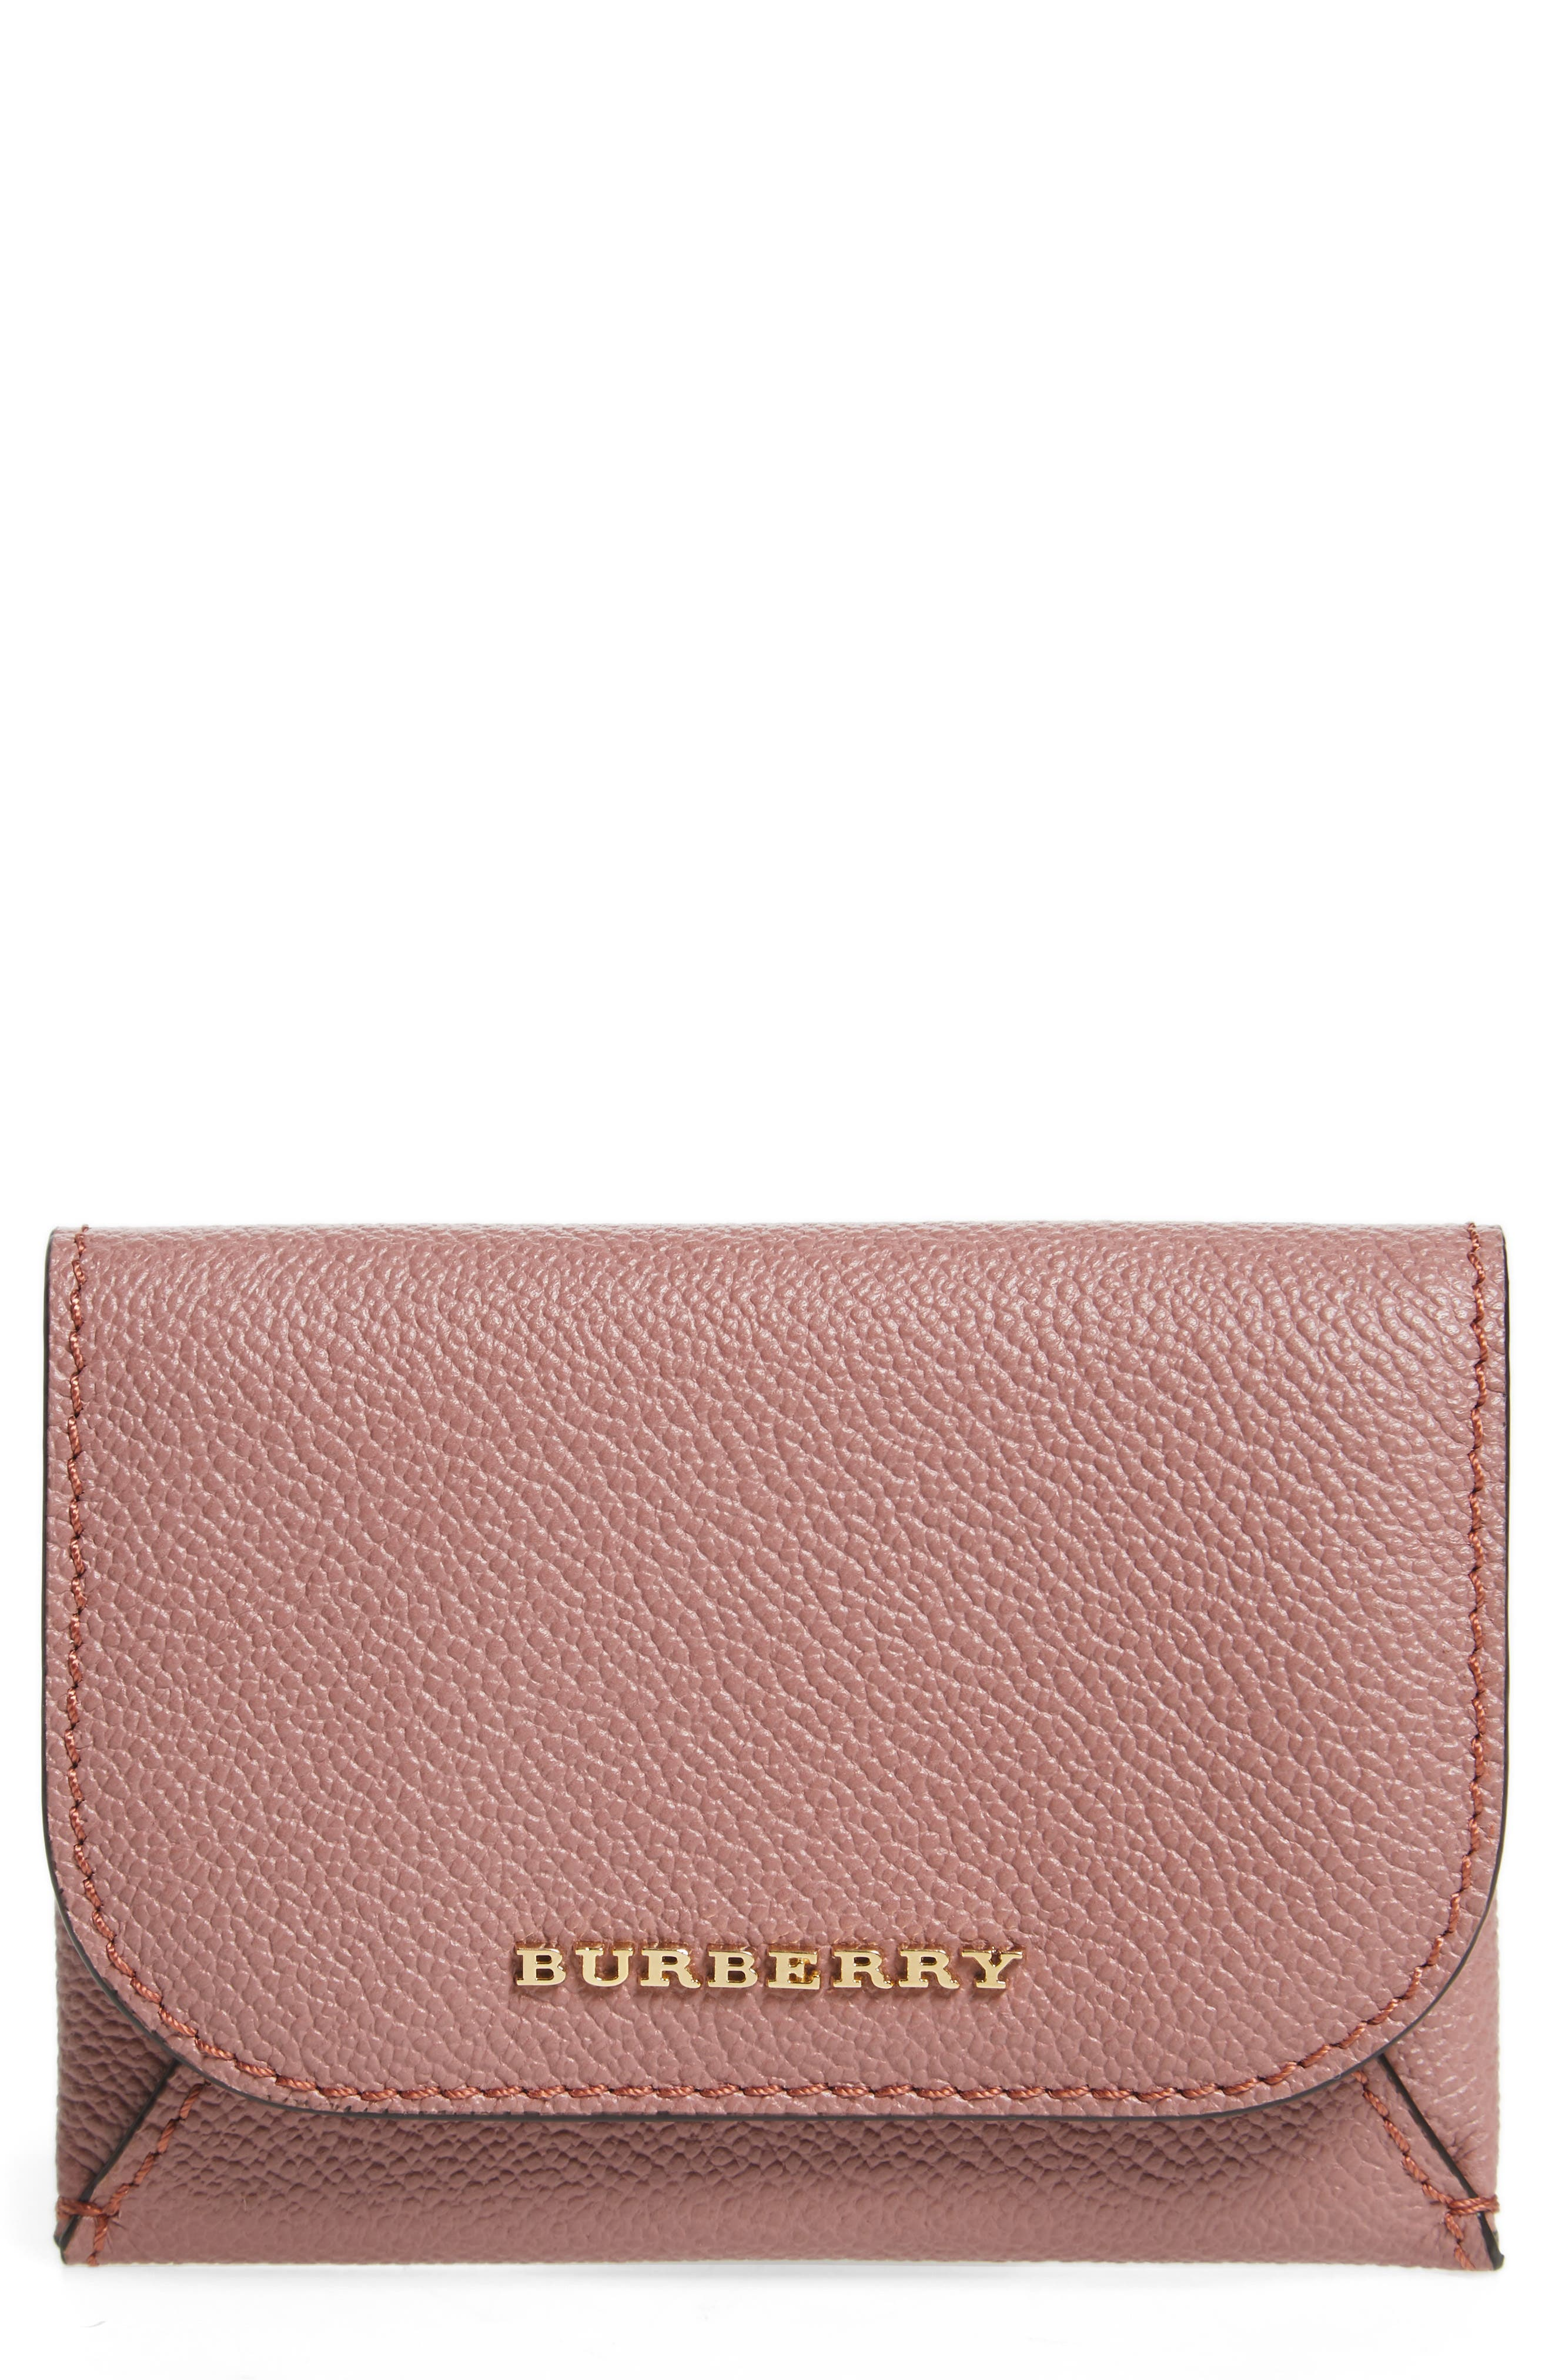 Mayfield Leather Card Case,                         Main,                         color, Dusty Pink / Multi